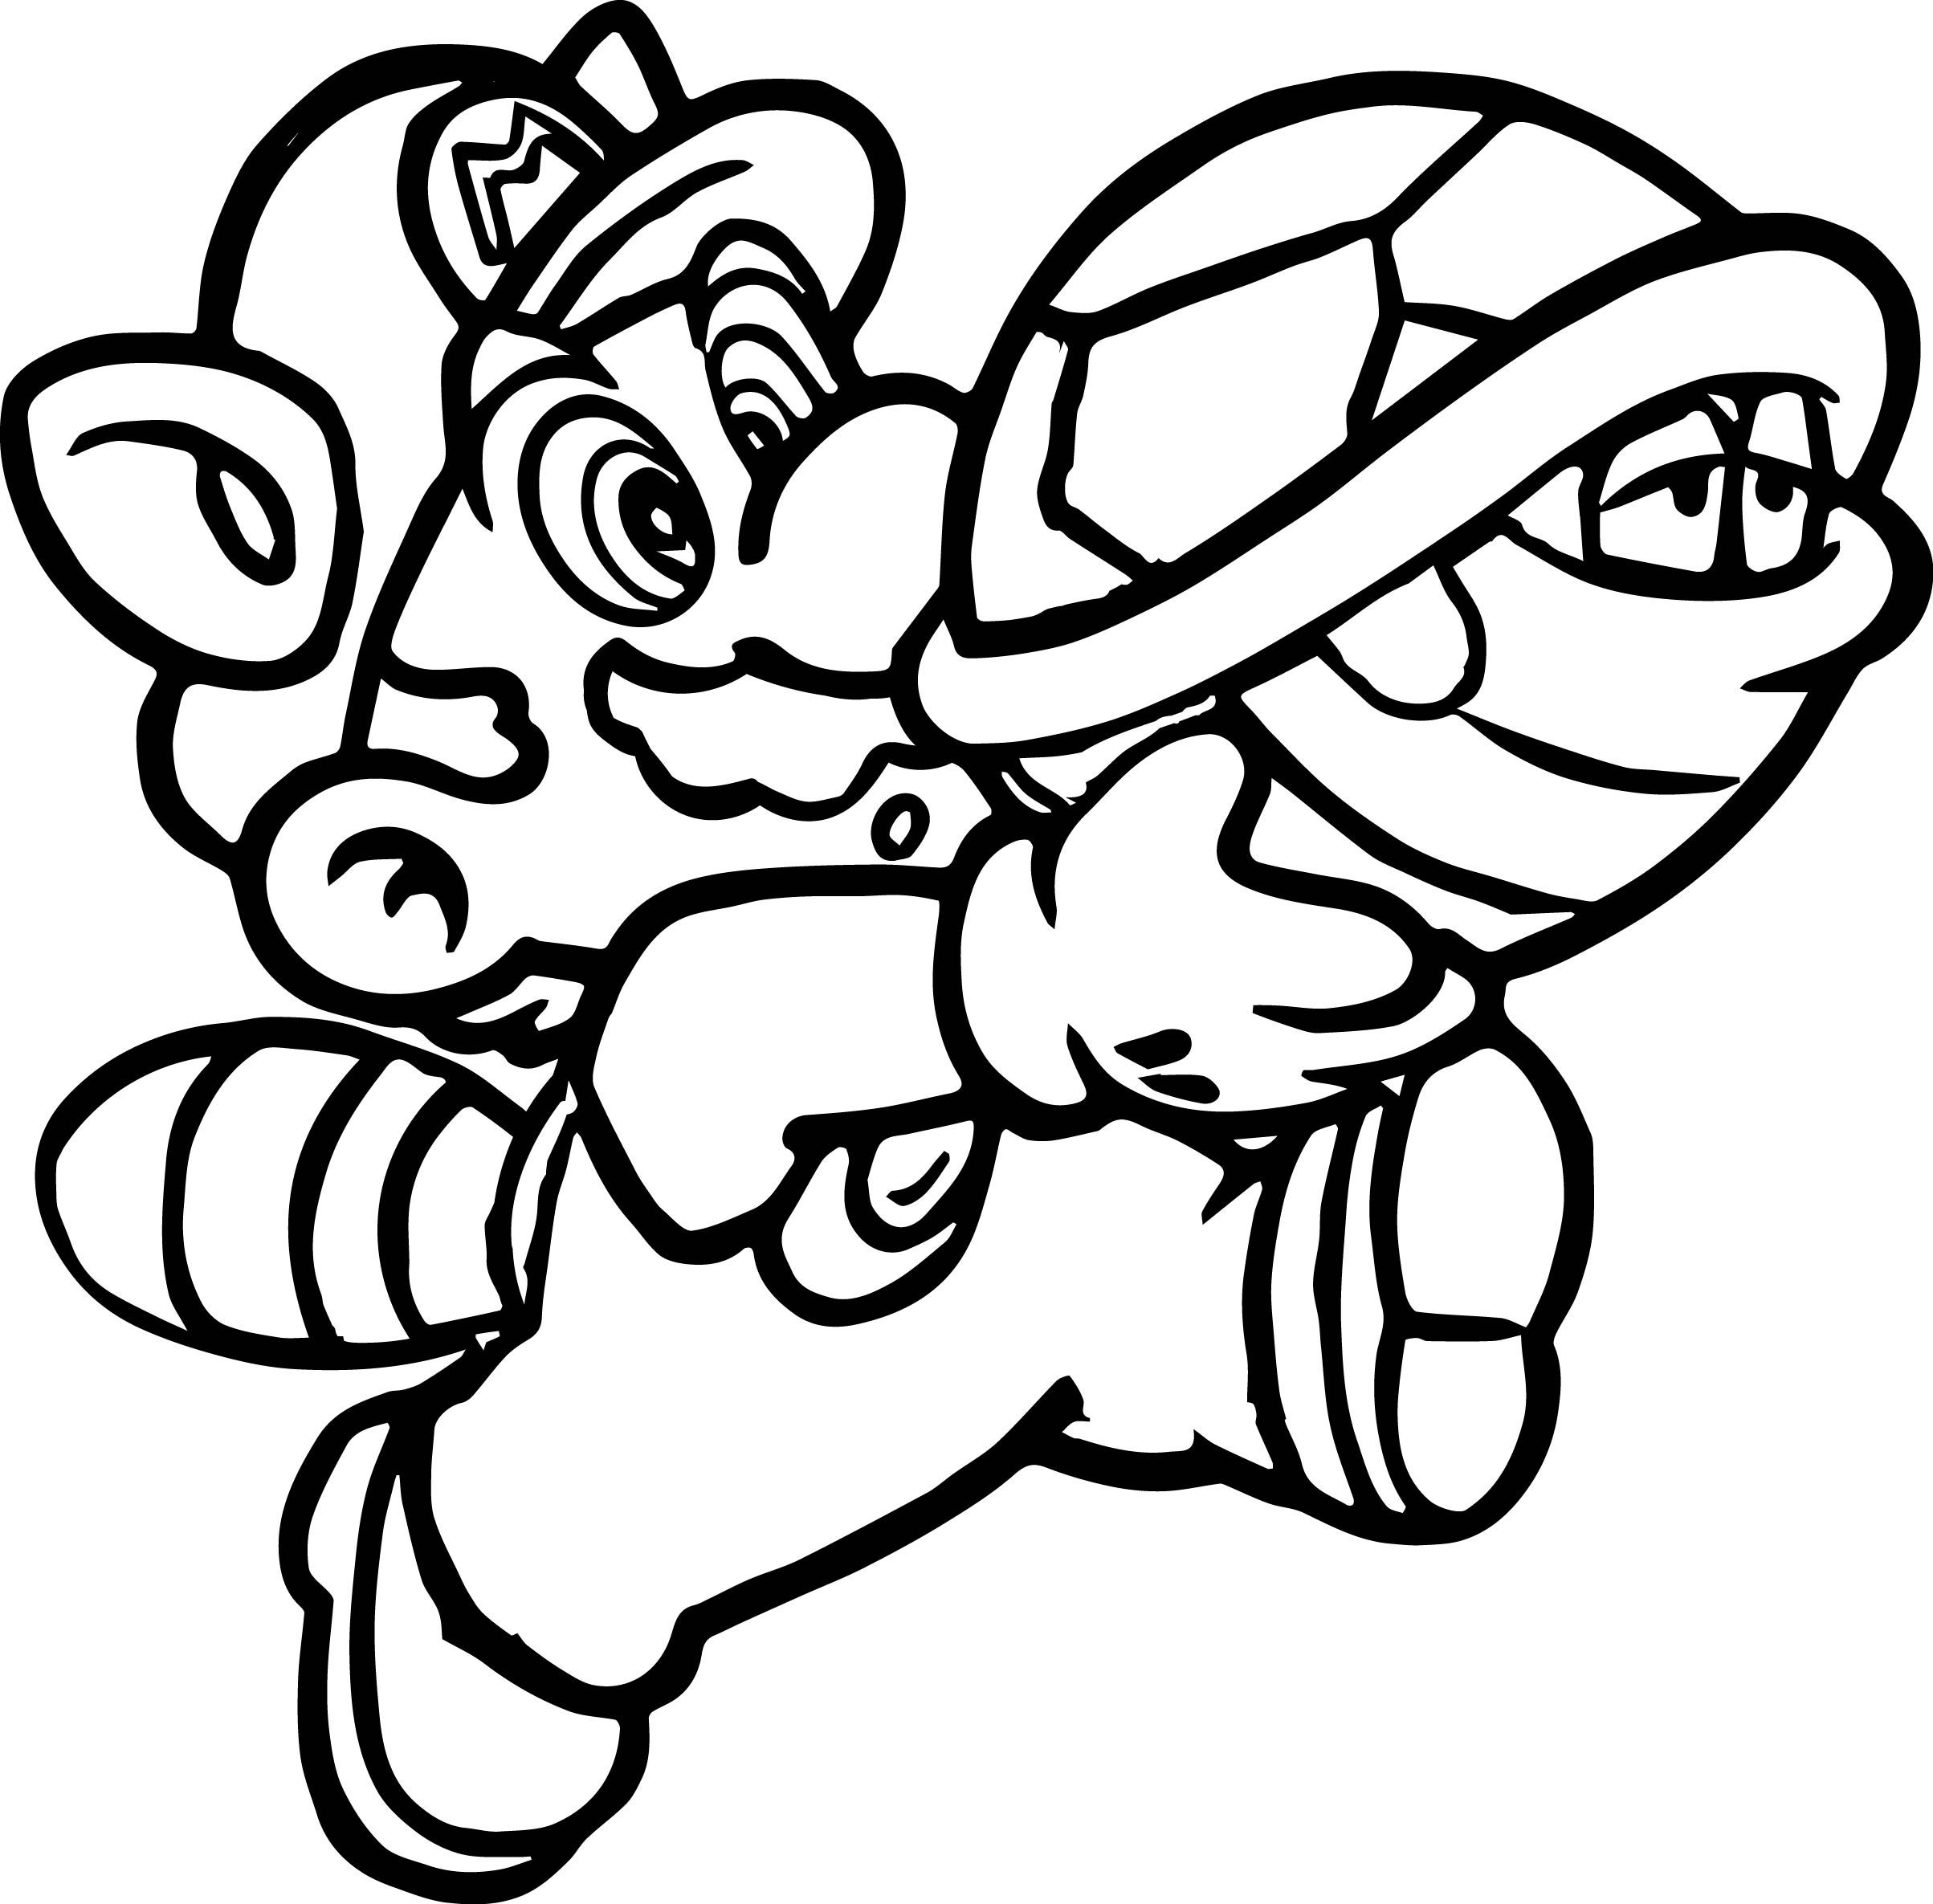 mario turtle coloring pages koopa troopa turtle coloring page free printable pages turtle mario coloring